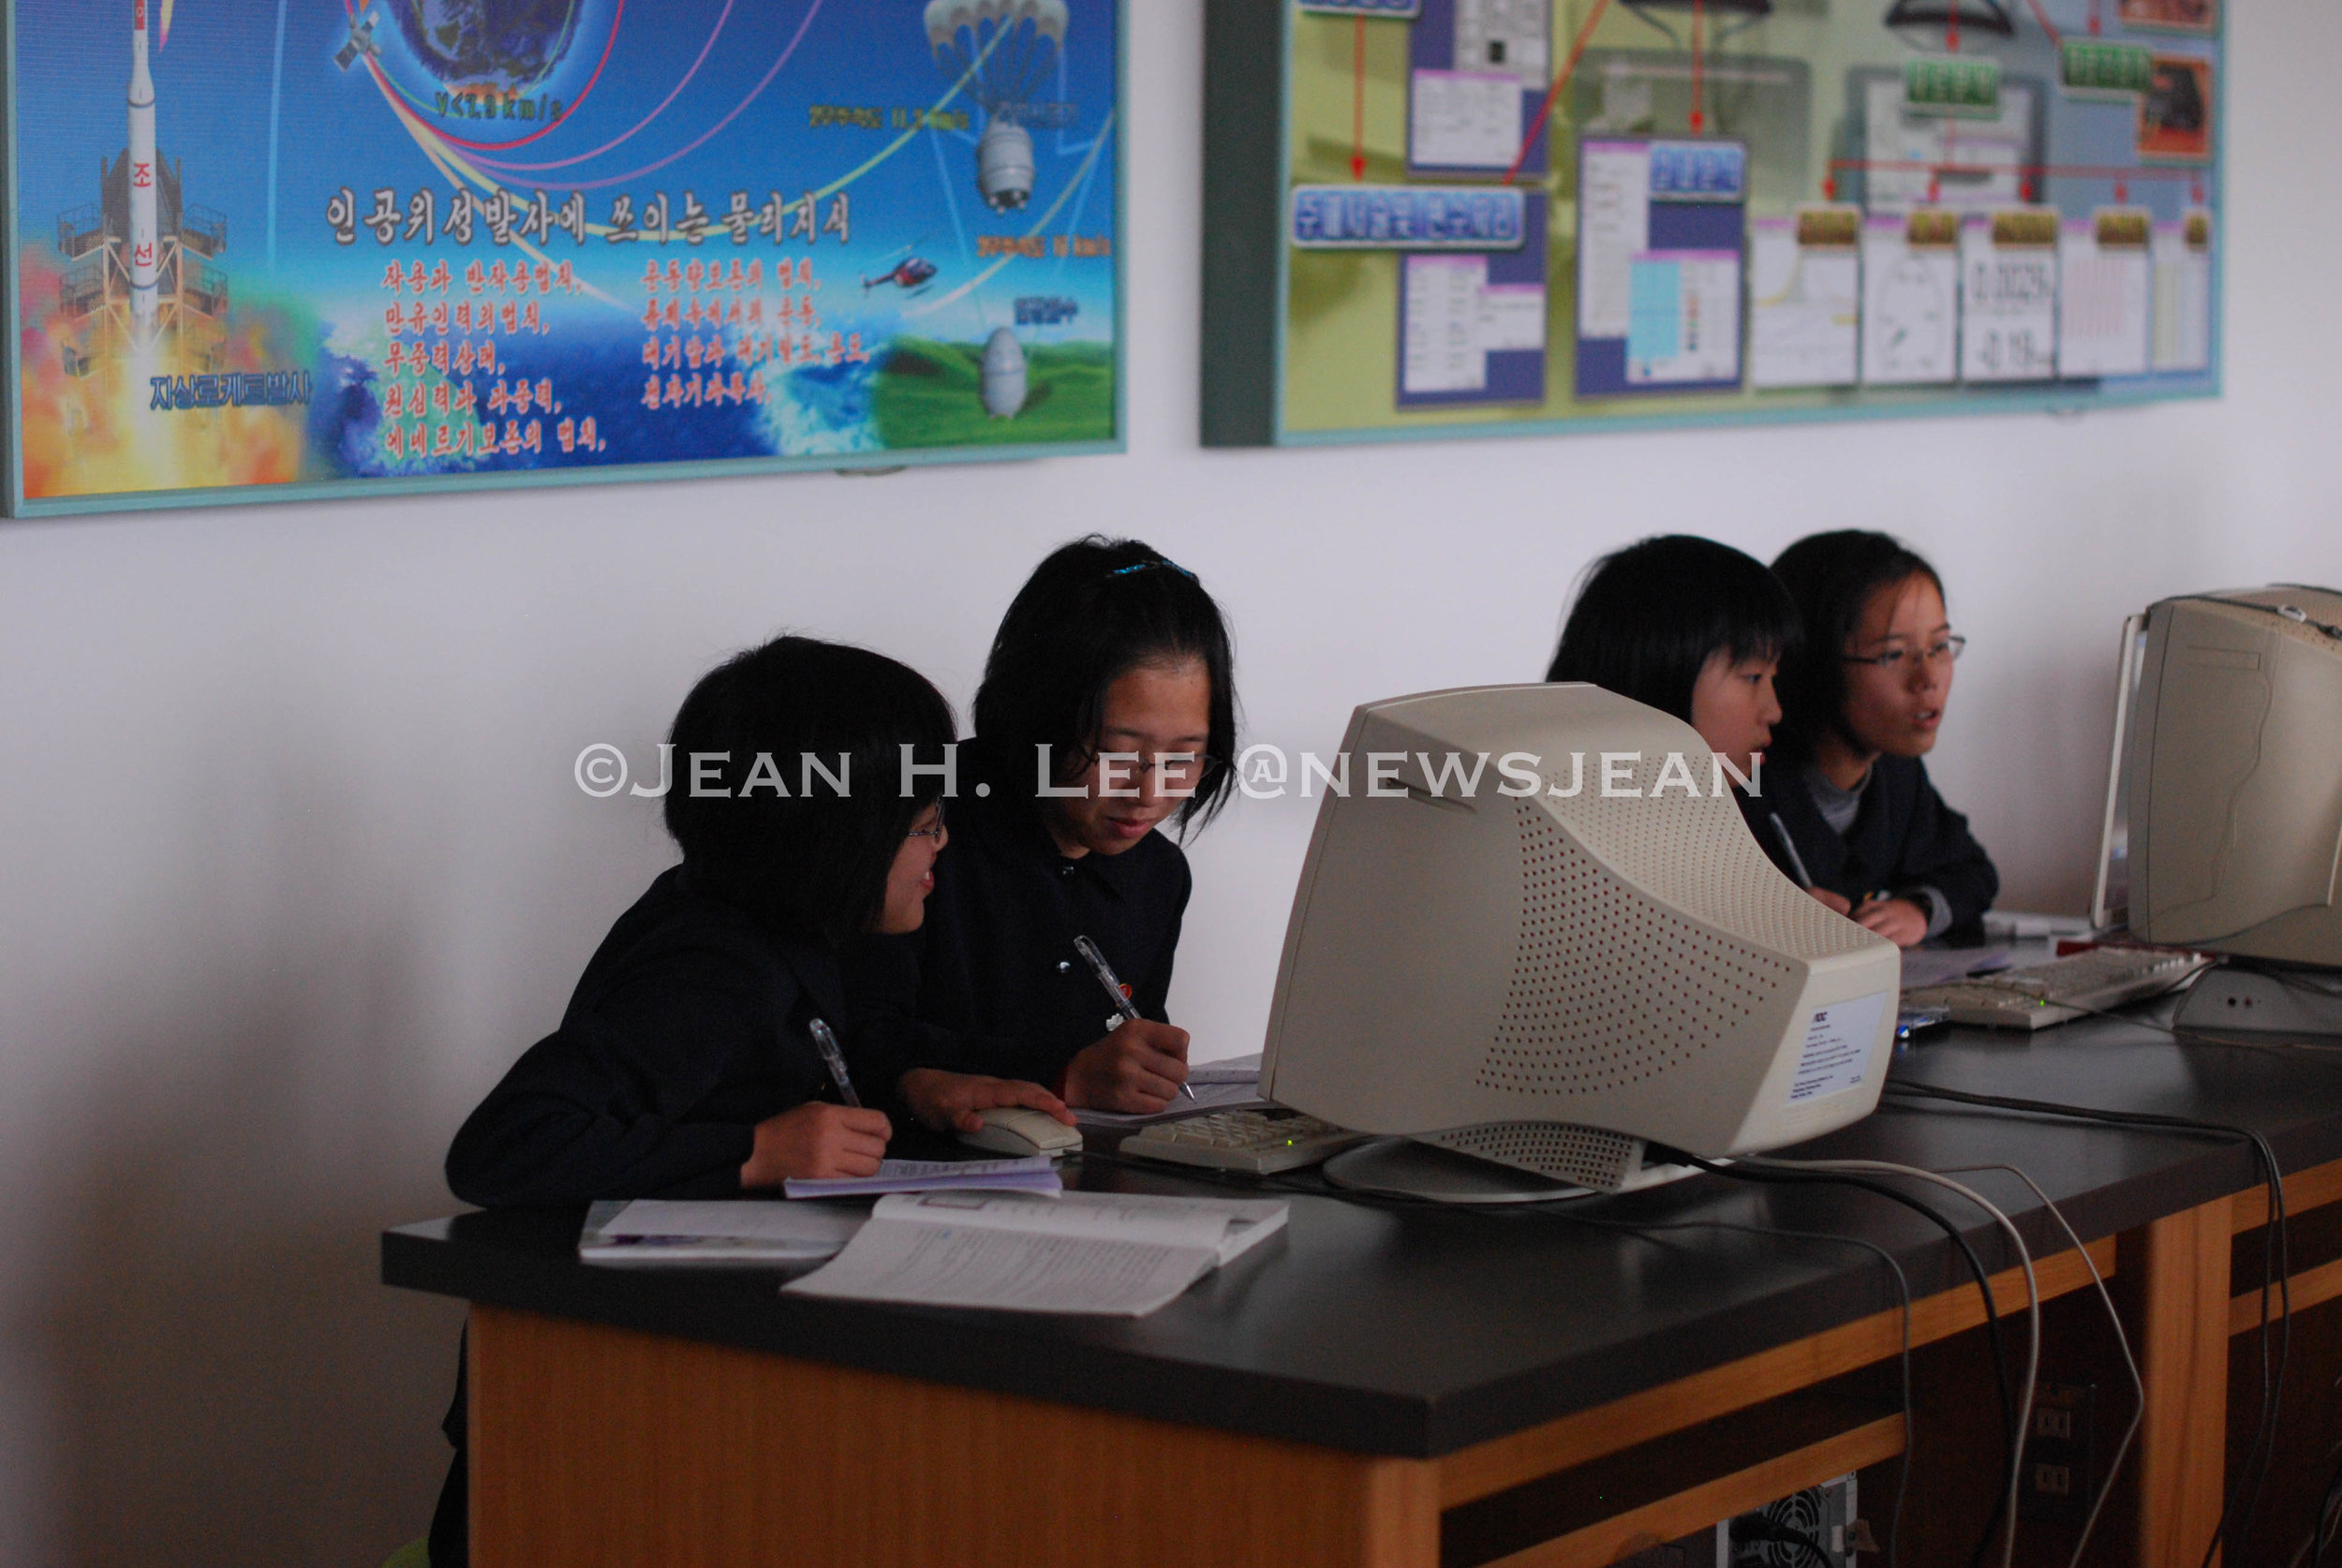 PYONGYANG, North Korea -- Middle school students work on a computer in front of a poster of North Korea's rockets and satellites behind them in this photo taken in Pyongyang, North Korea, on Oct. 24, 2011. (Photo credit: Jean H. Lee)